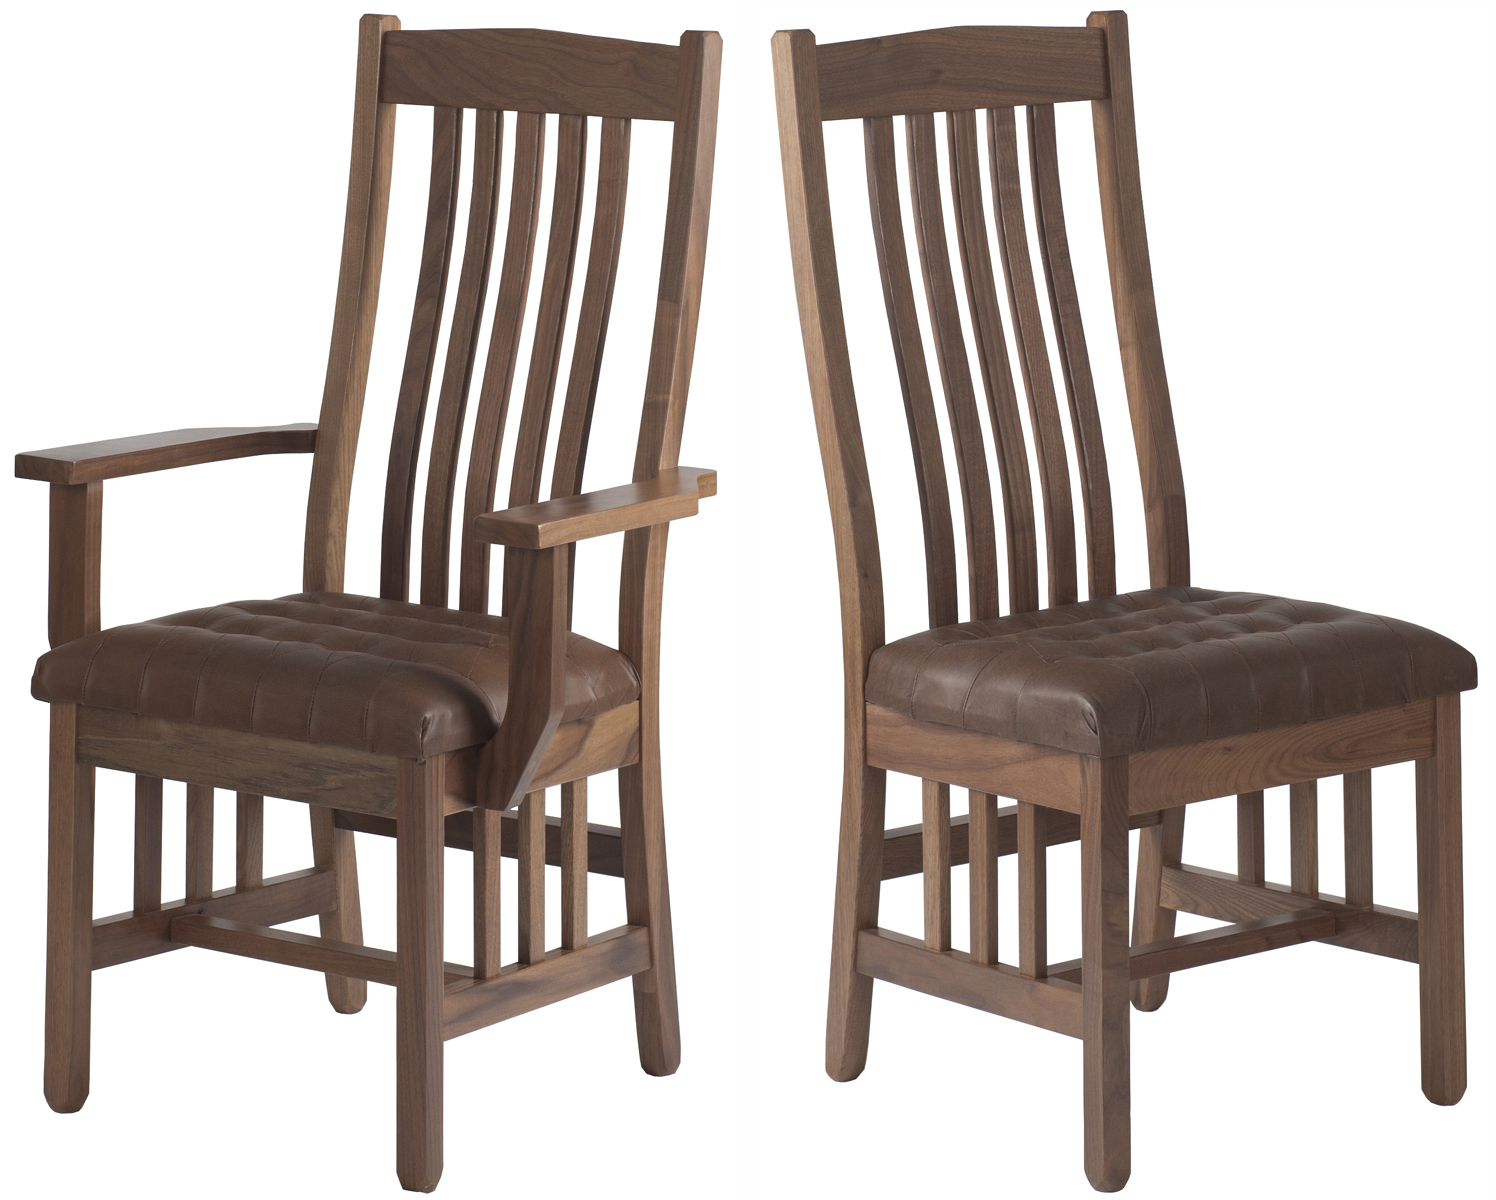 Mission Chairs Raised Mission Dining Chair Dining Room Chair In The